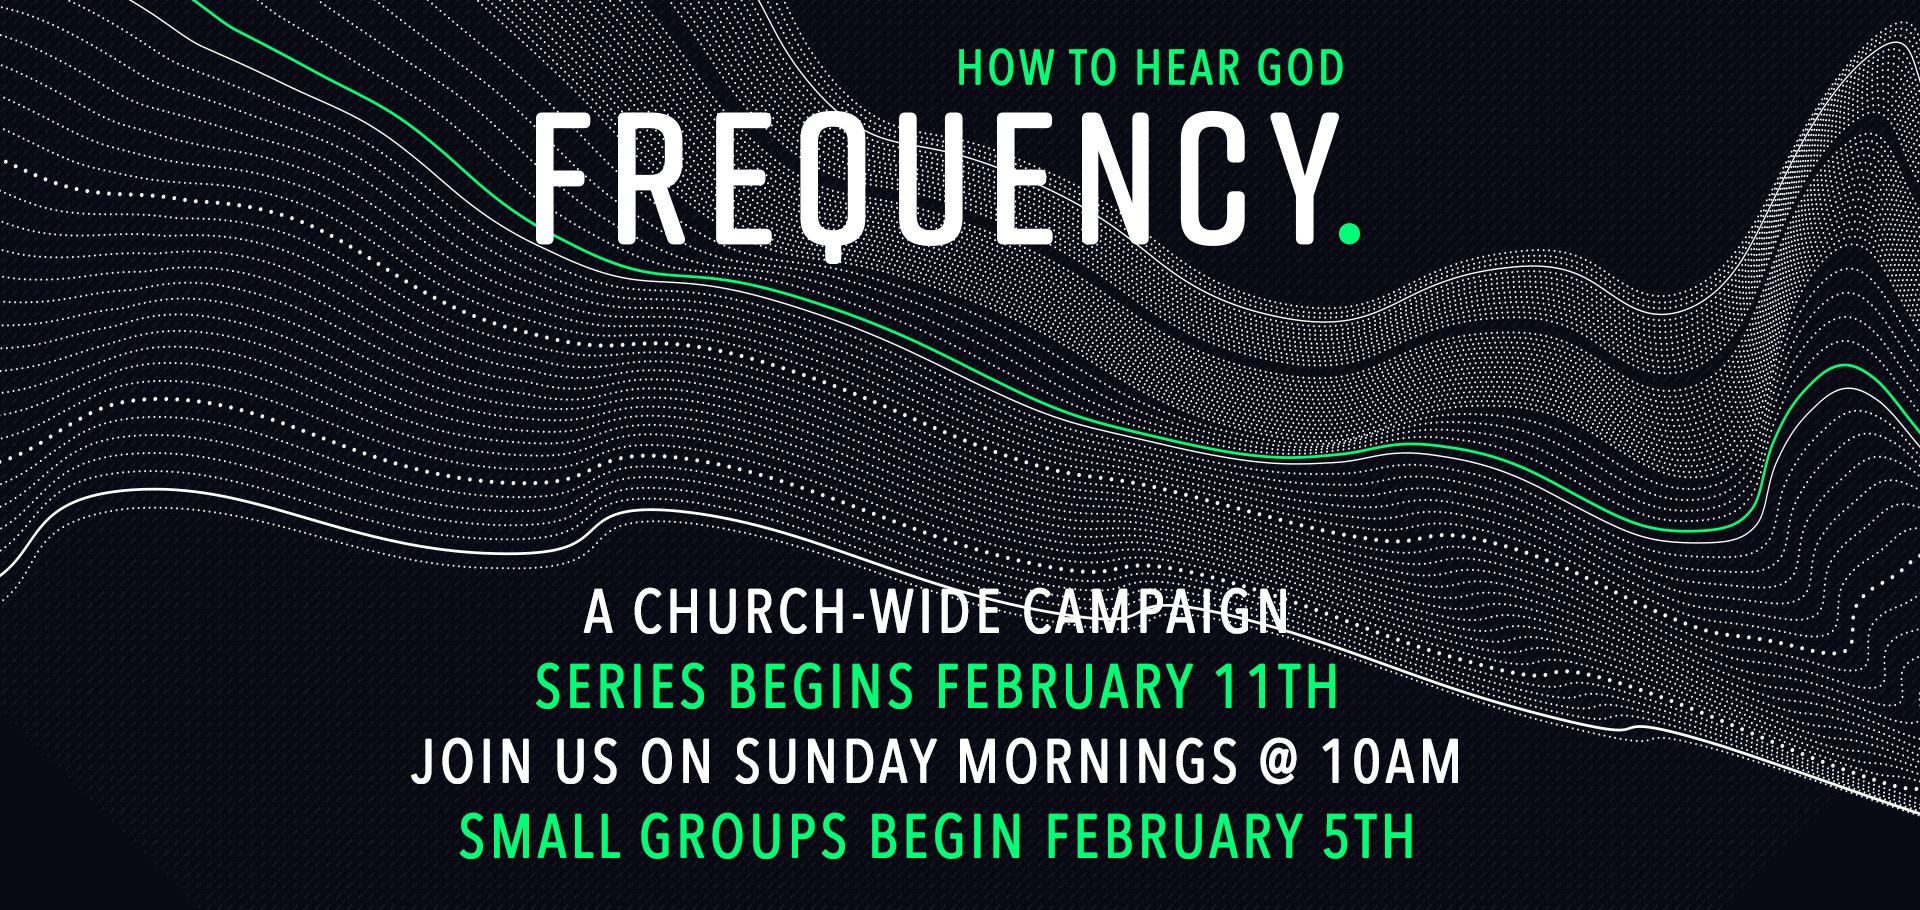 Frequency: How to Hear God